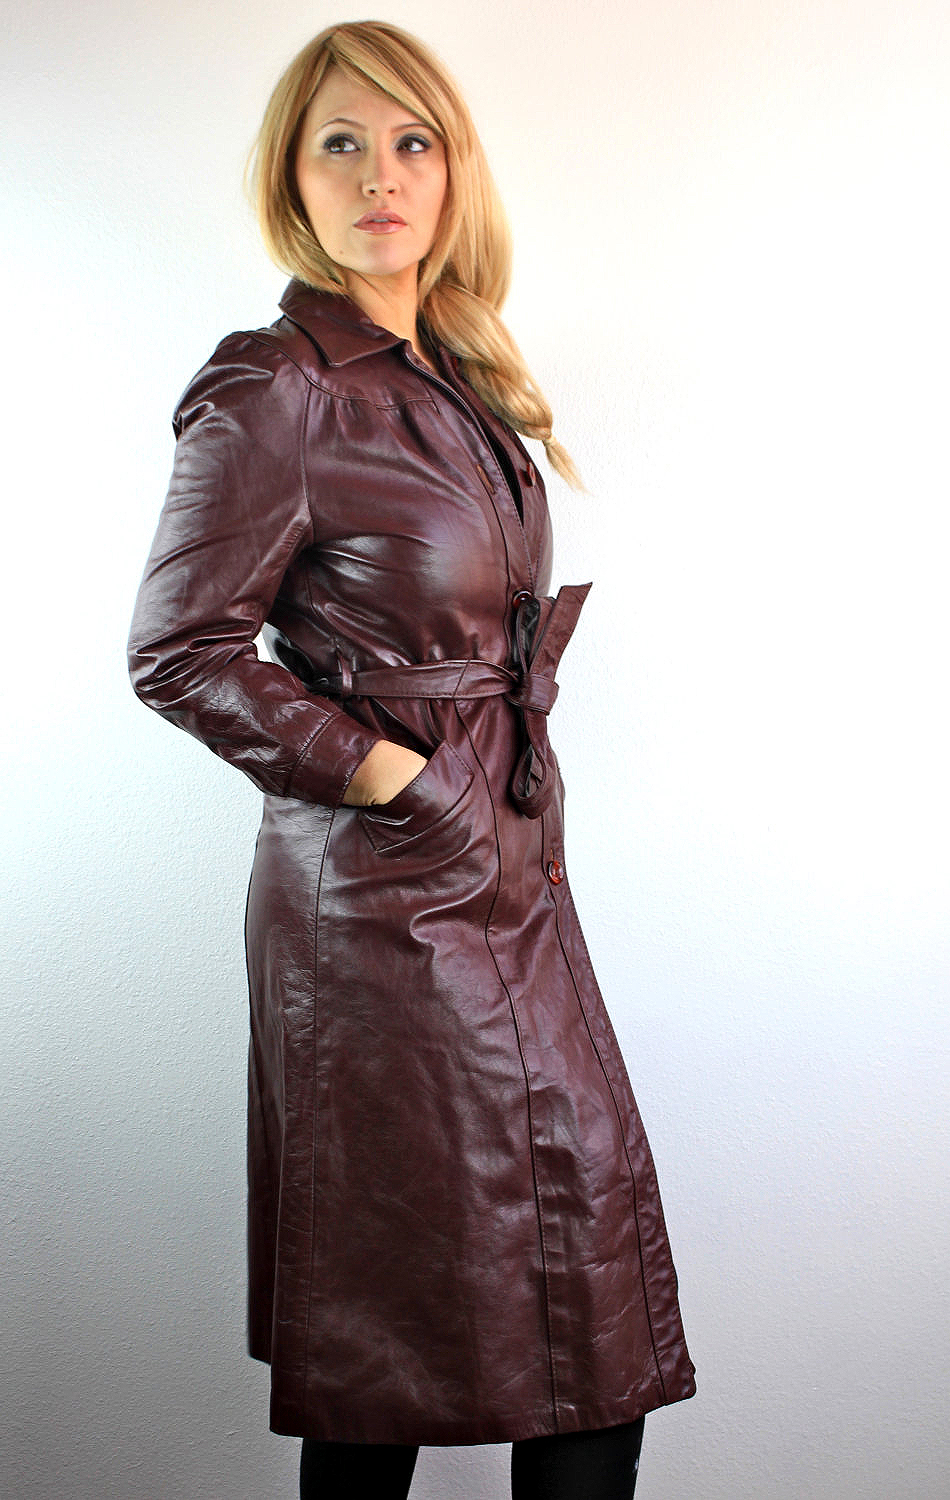 Leather Coat Daydreams: Chocolate leather vintage coat